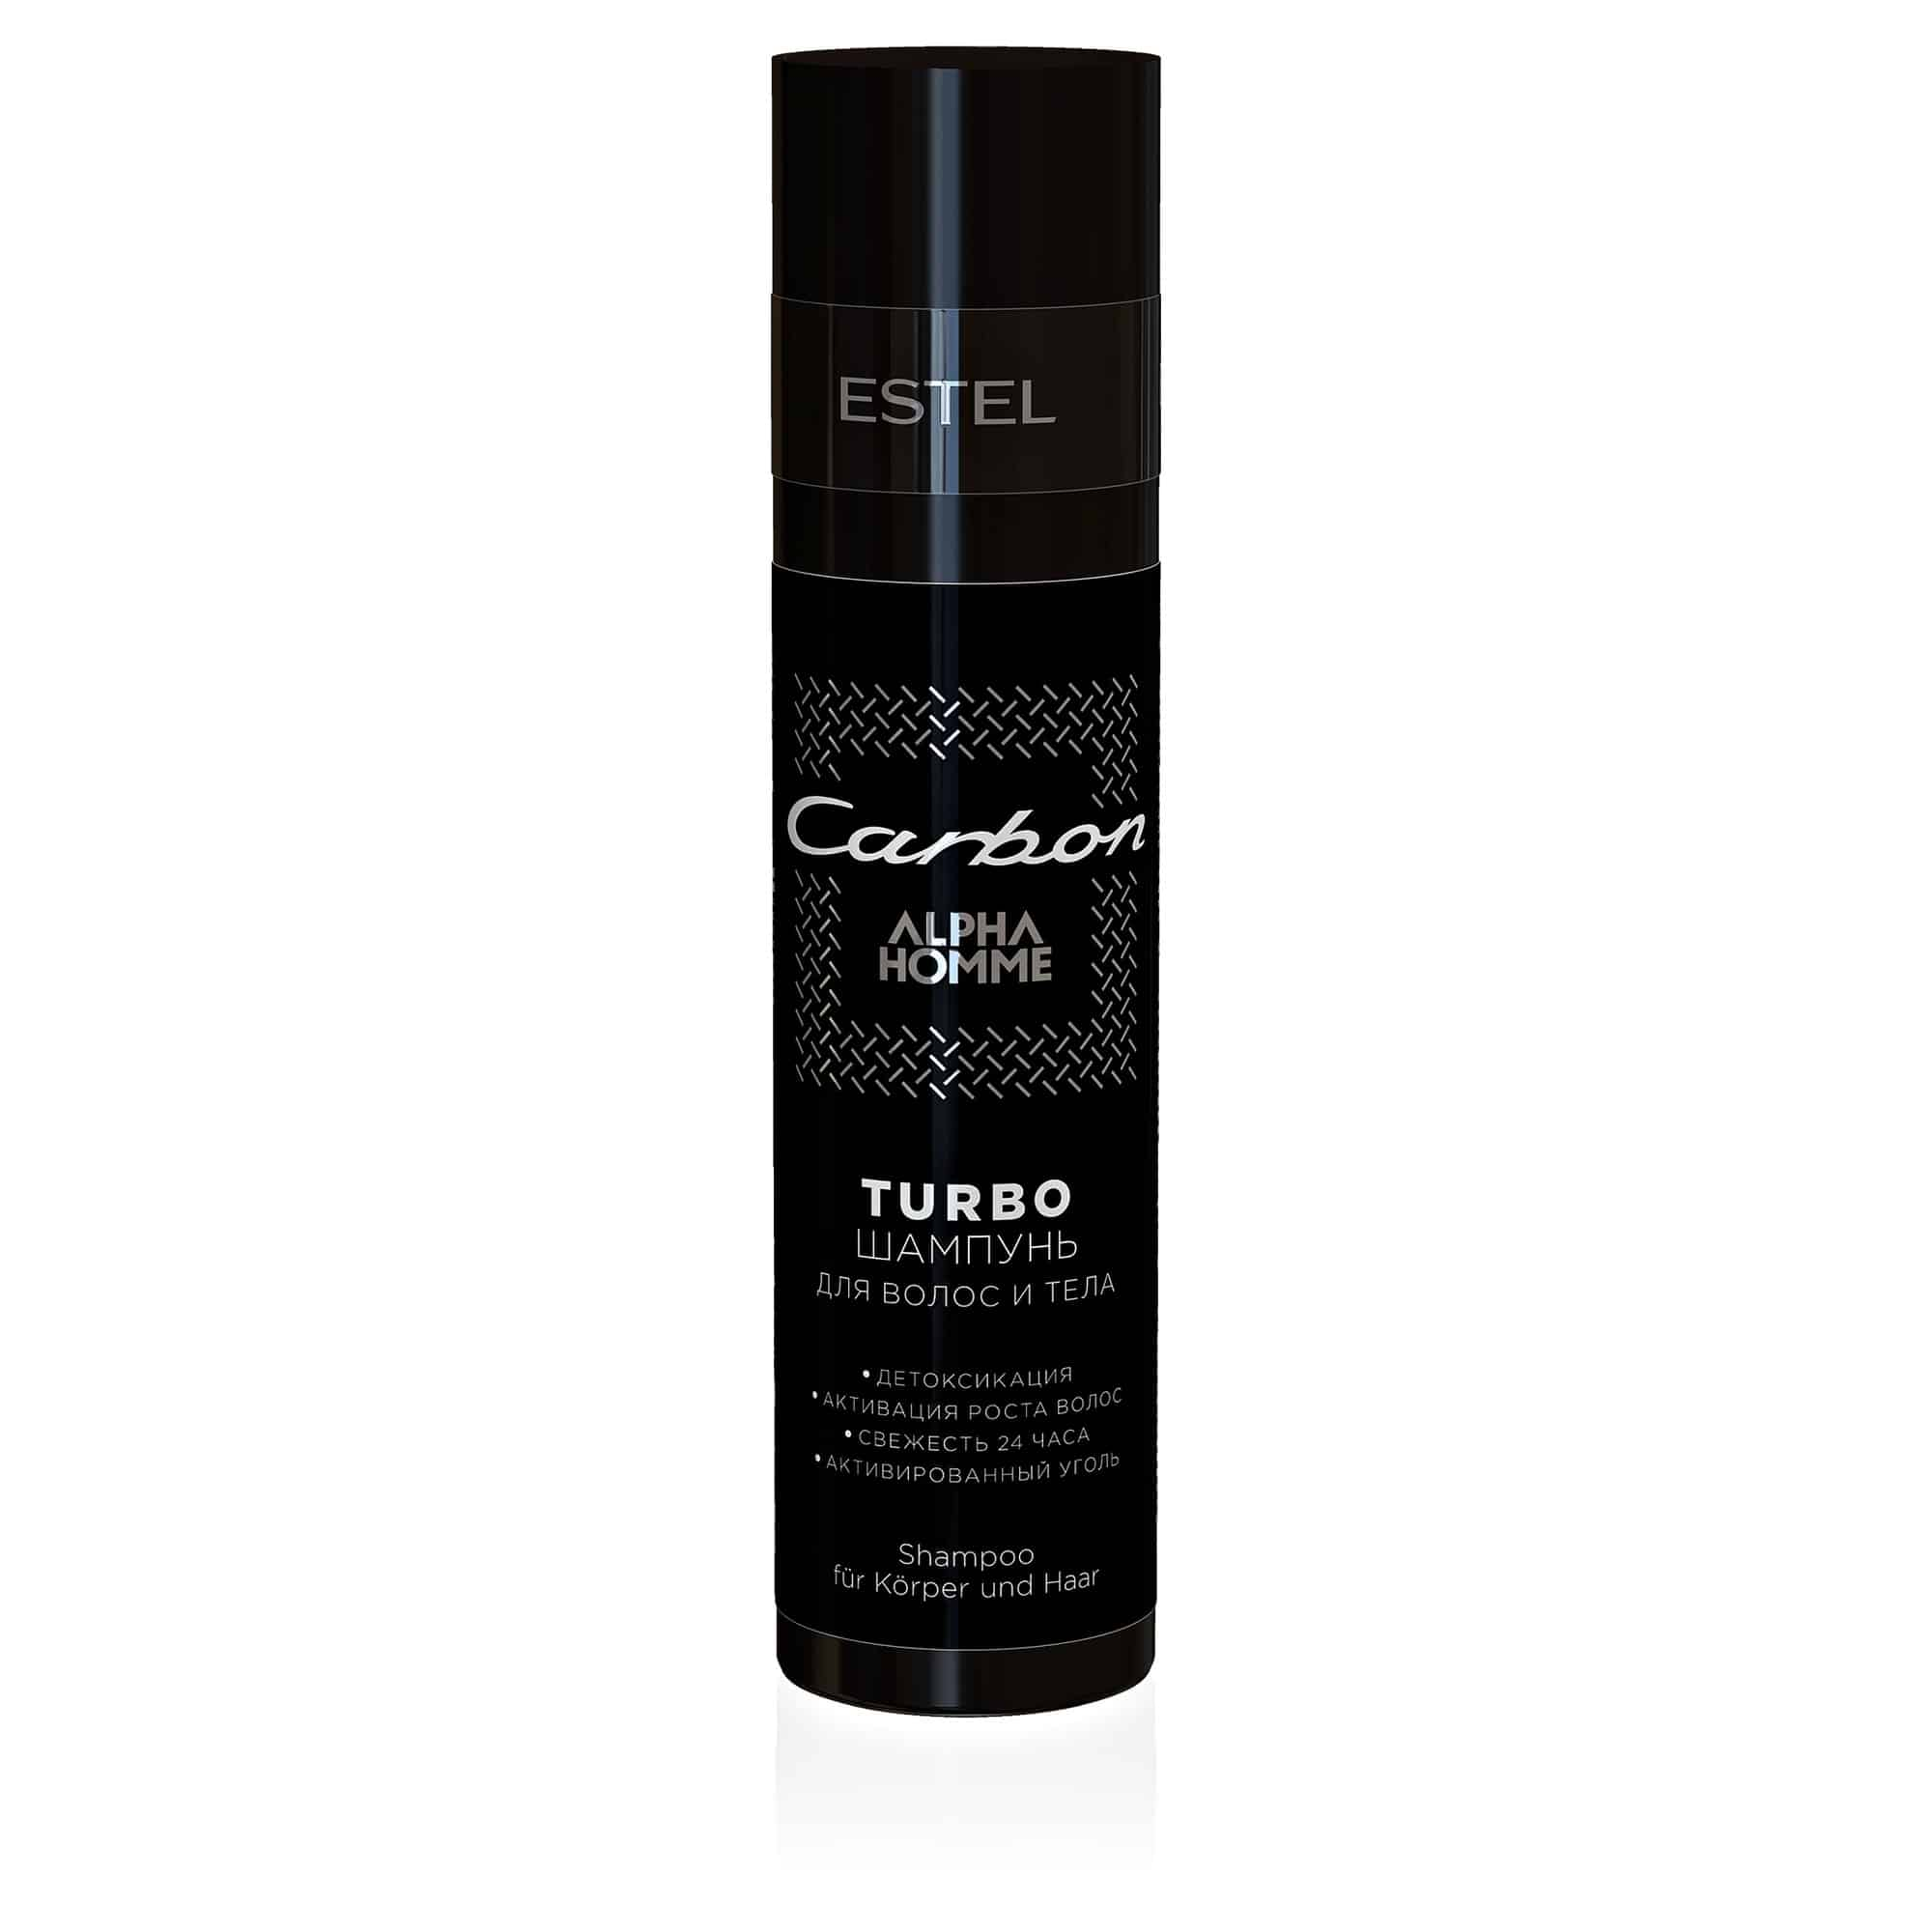 ESTEL-Pflege-ALPHA-HOMME-CARBON-CARBON-250ml-bottle